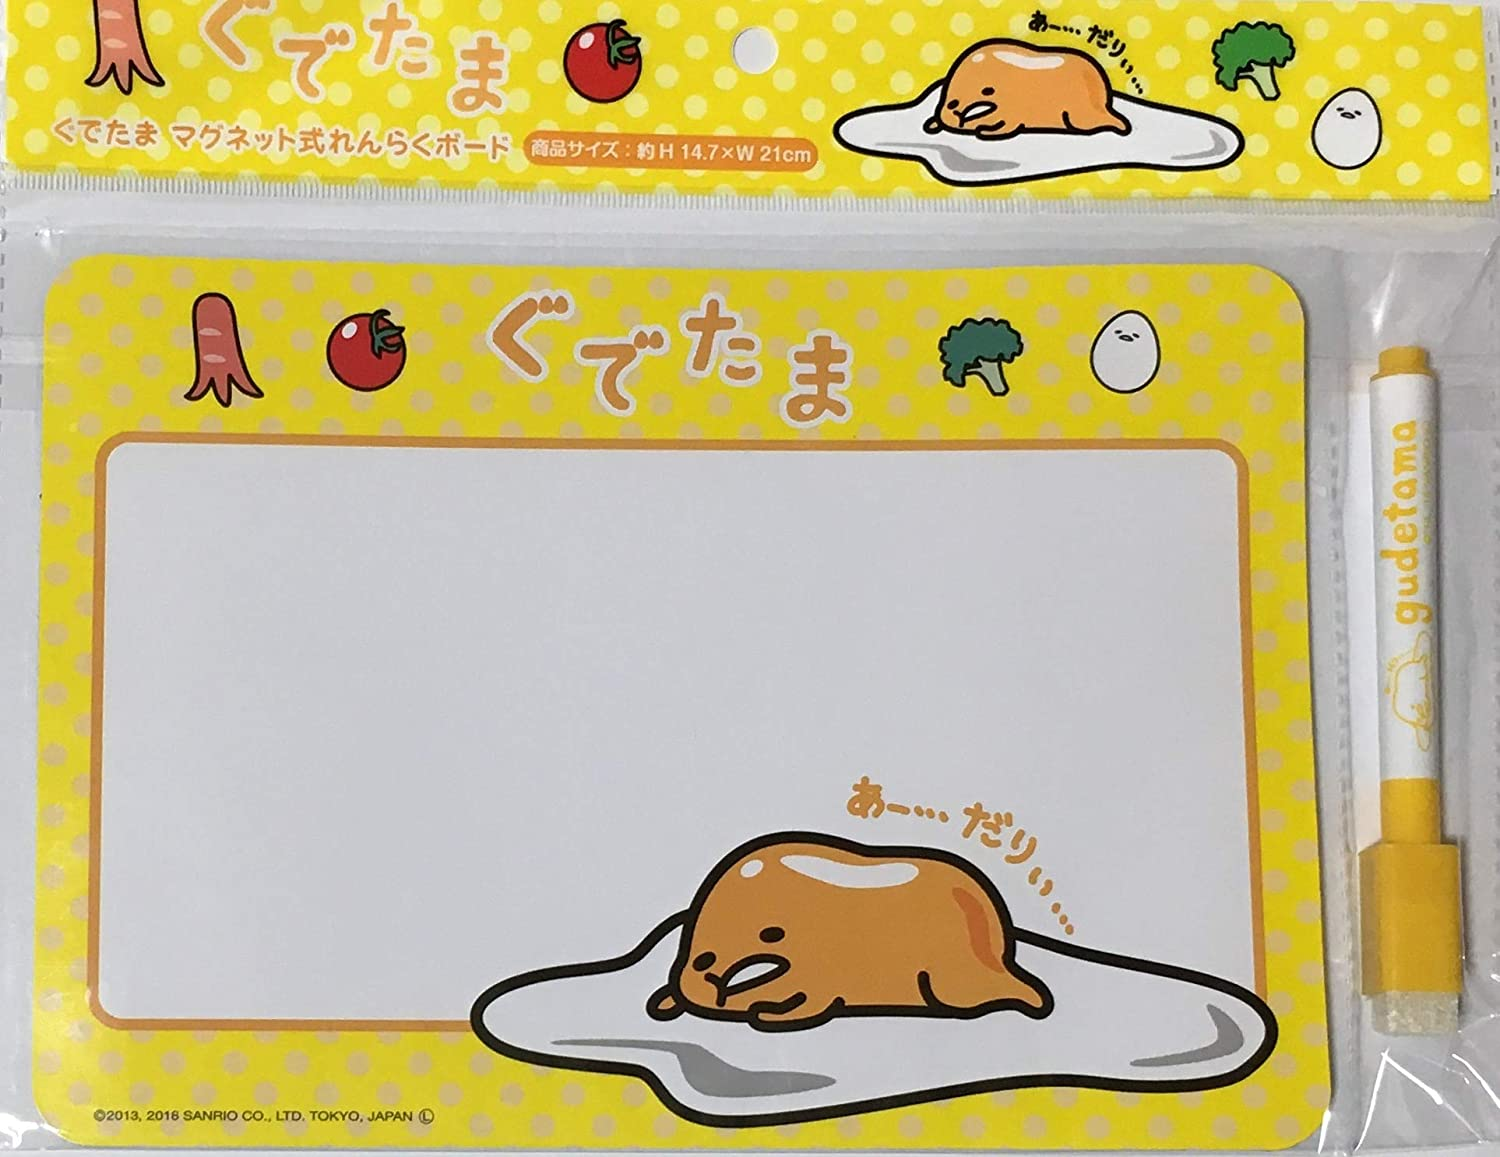 Sanrio Gudetama Magnetic Type Pictorial Communication Wall Hanging White Board with Magnetic Marker Pen & Eraser Eikoh